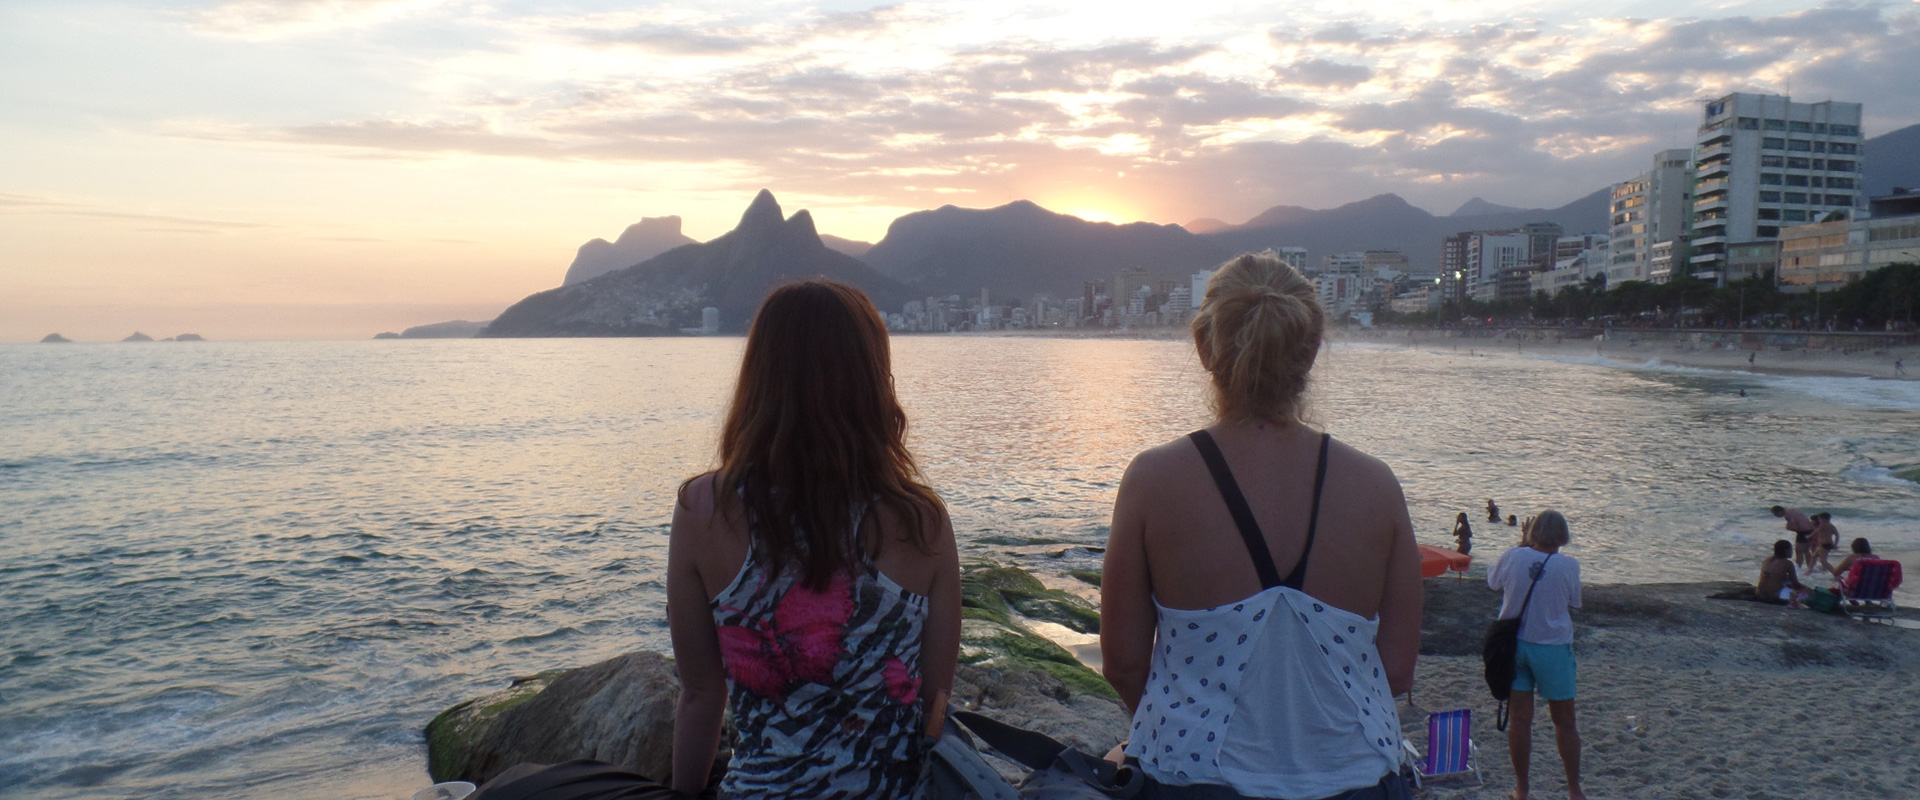 Foreigners students watching the sunset at Arpoador in Rio de Janeiro.